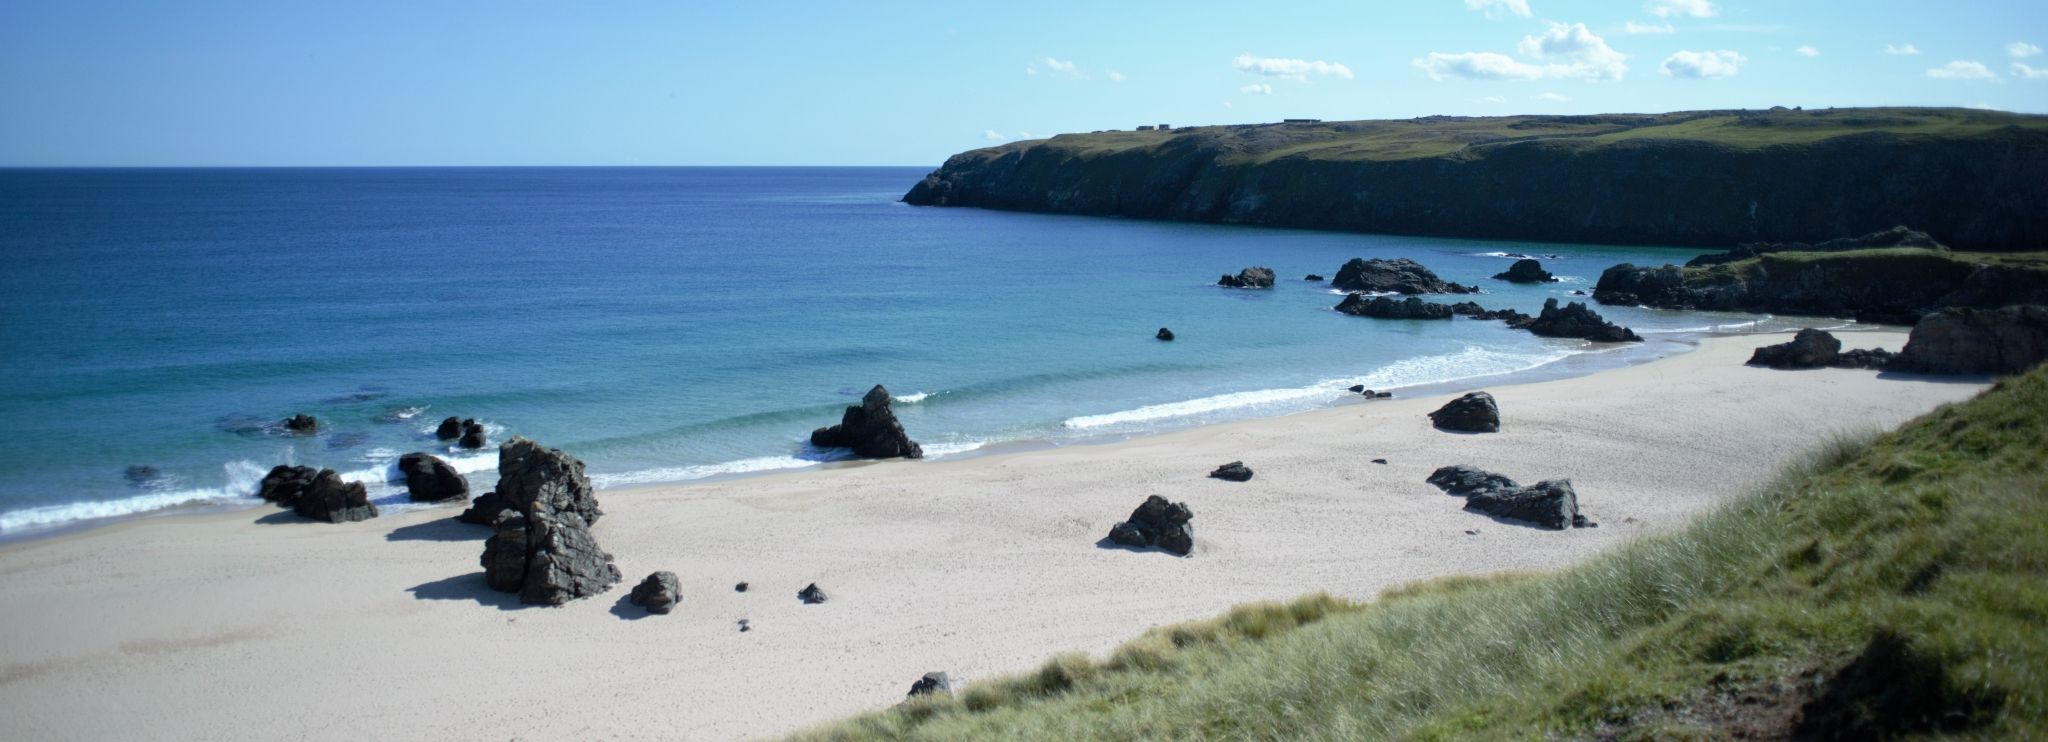 North Coast Beach at Durness